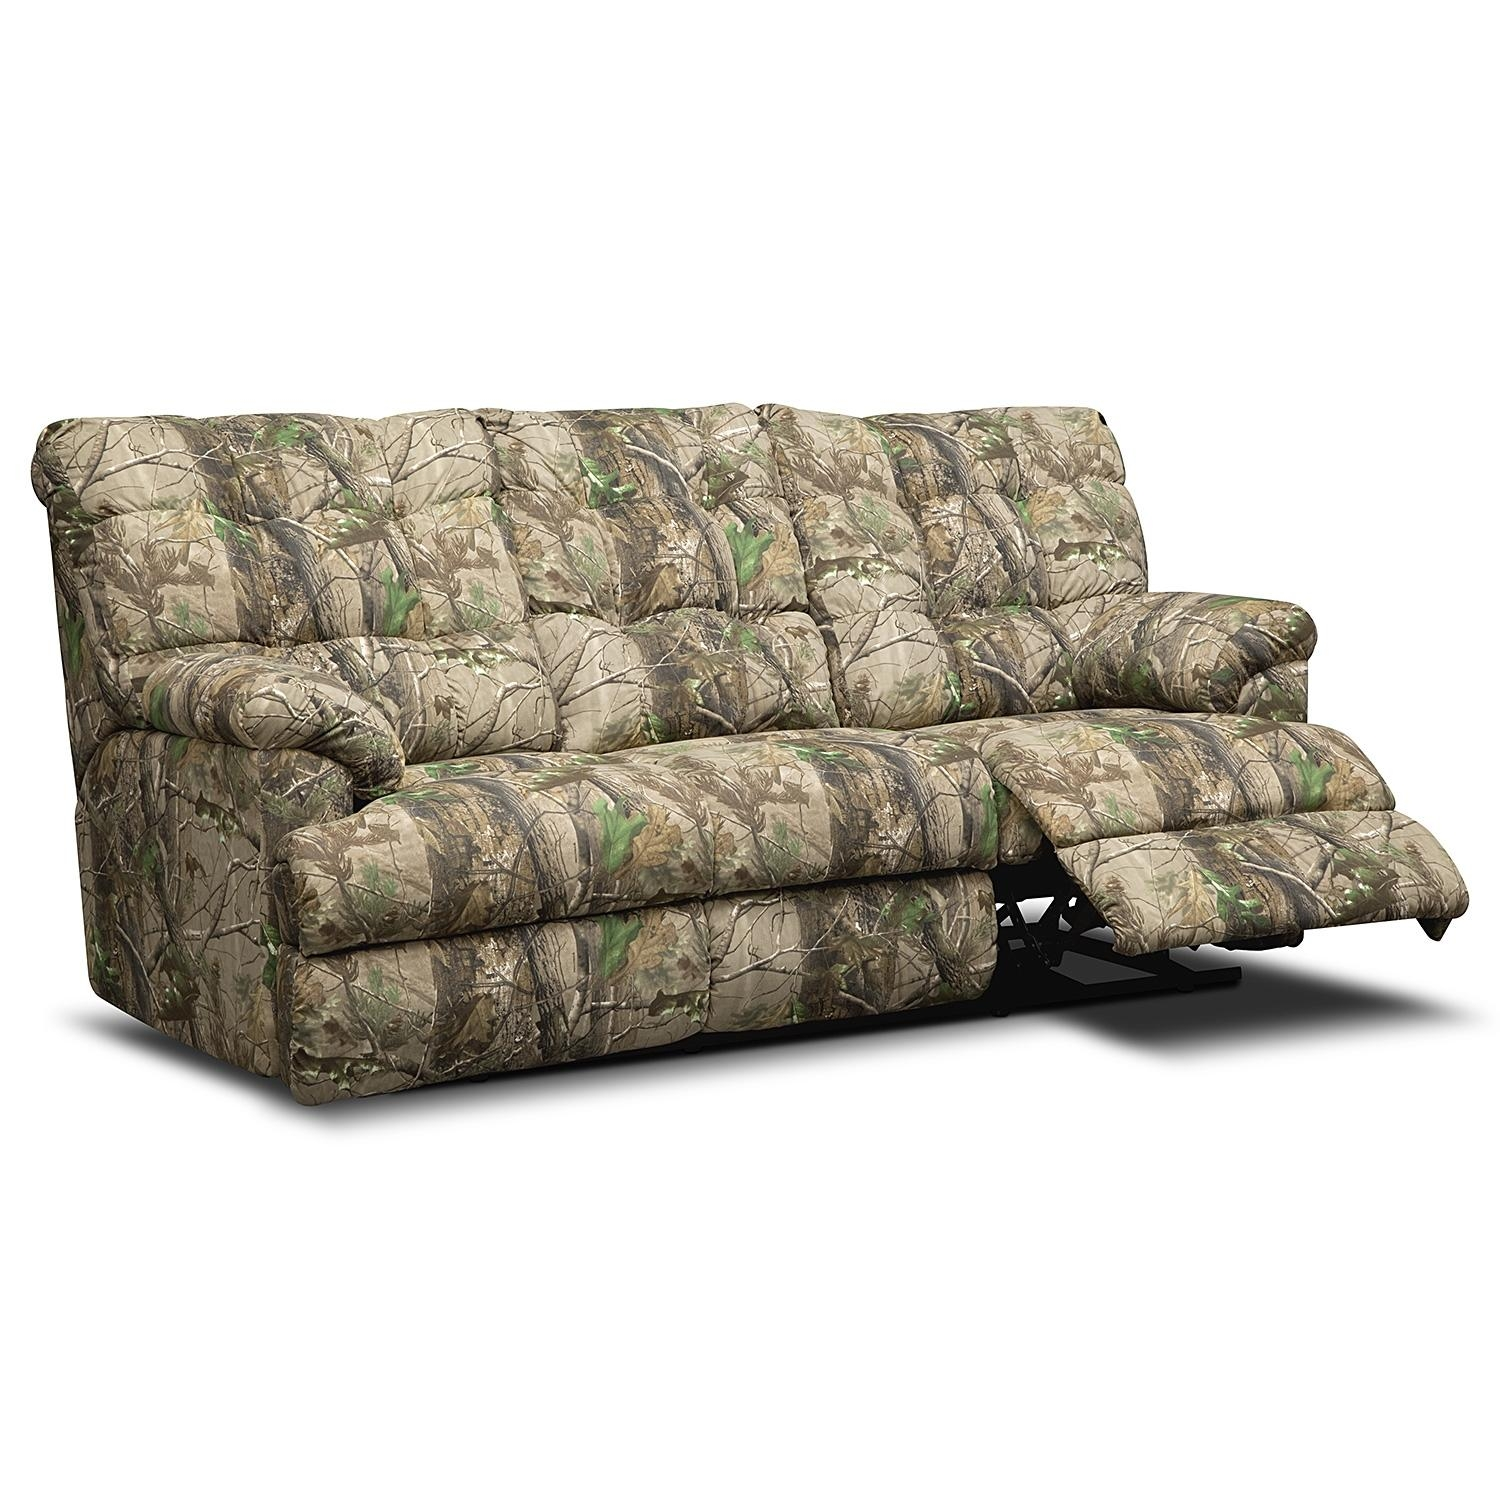 20 Inspirations Camo Reclining Sofas Sofa Ideas